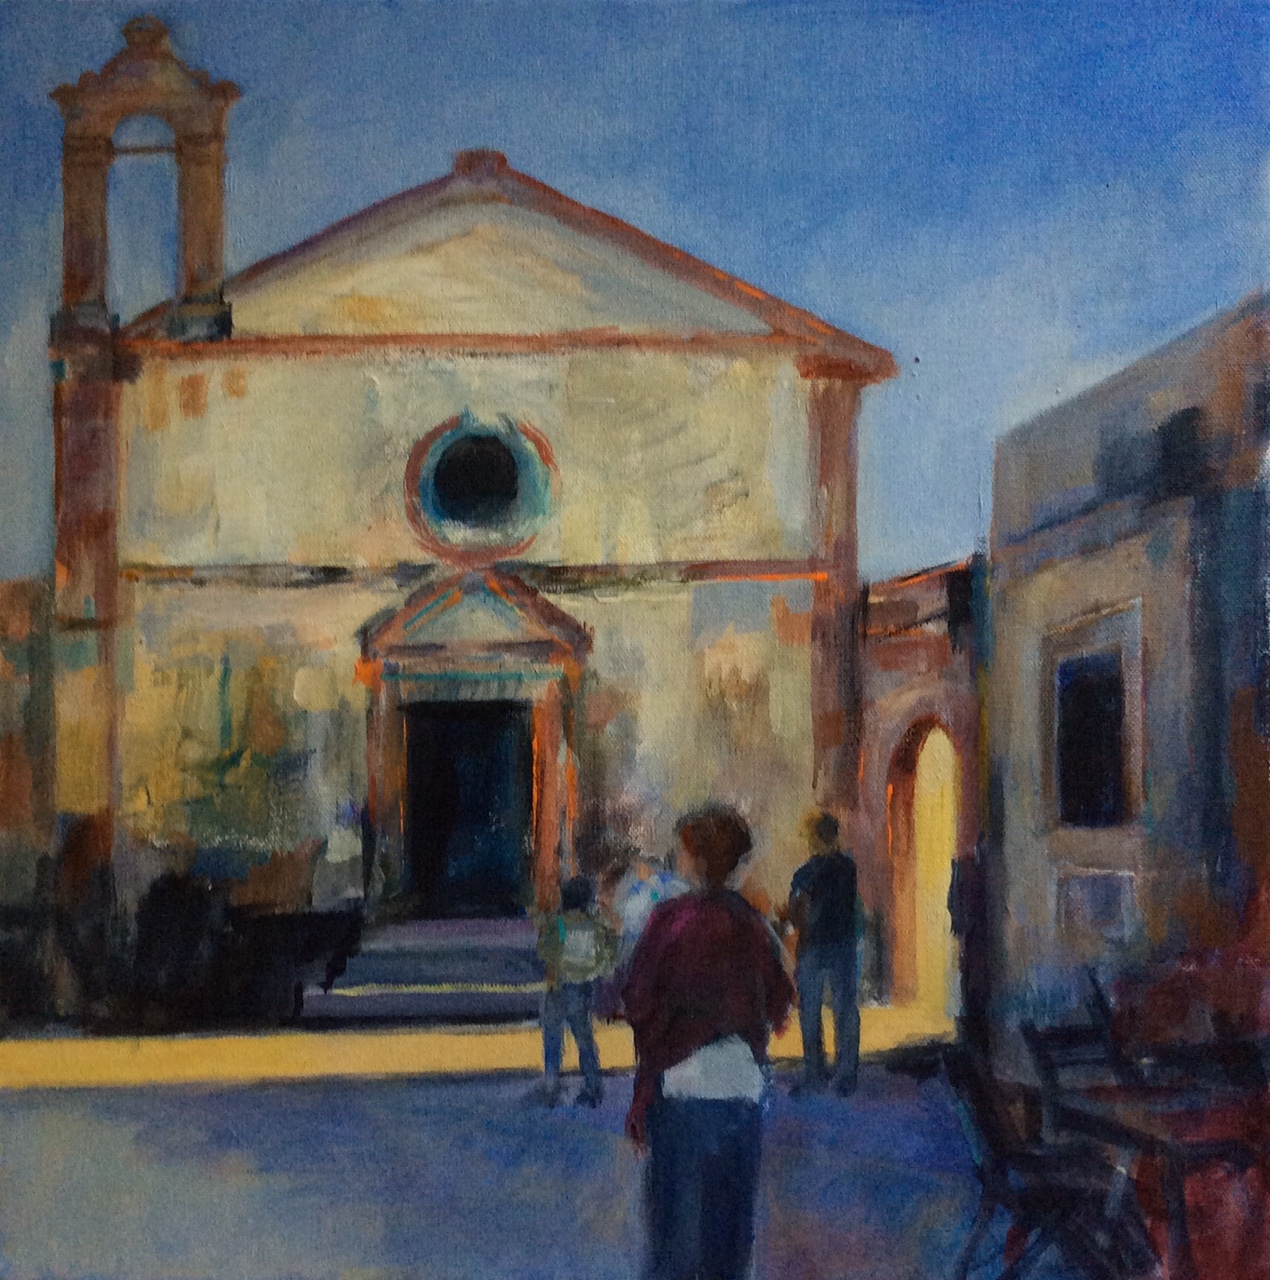 Late Afternoon in Marzamemi, - acrylic on canvas